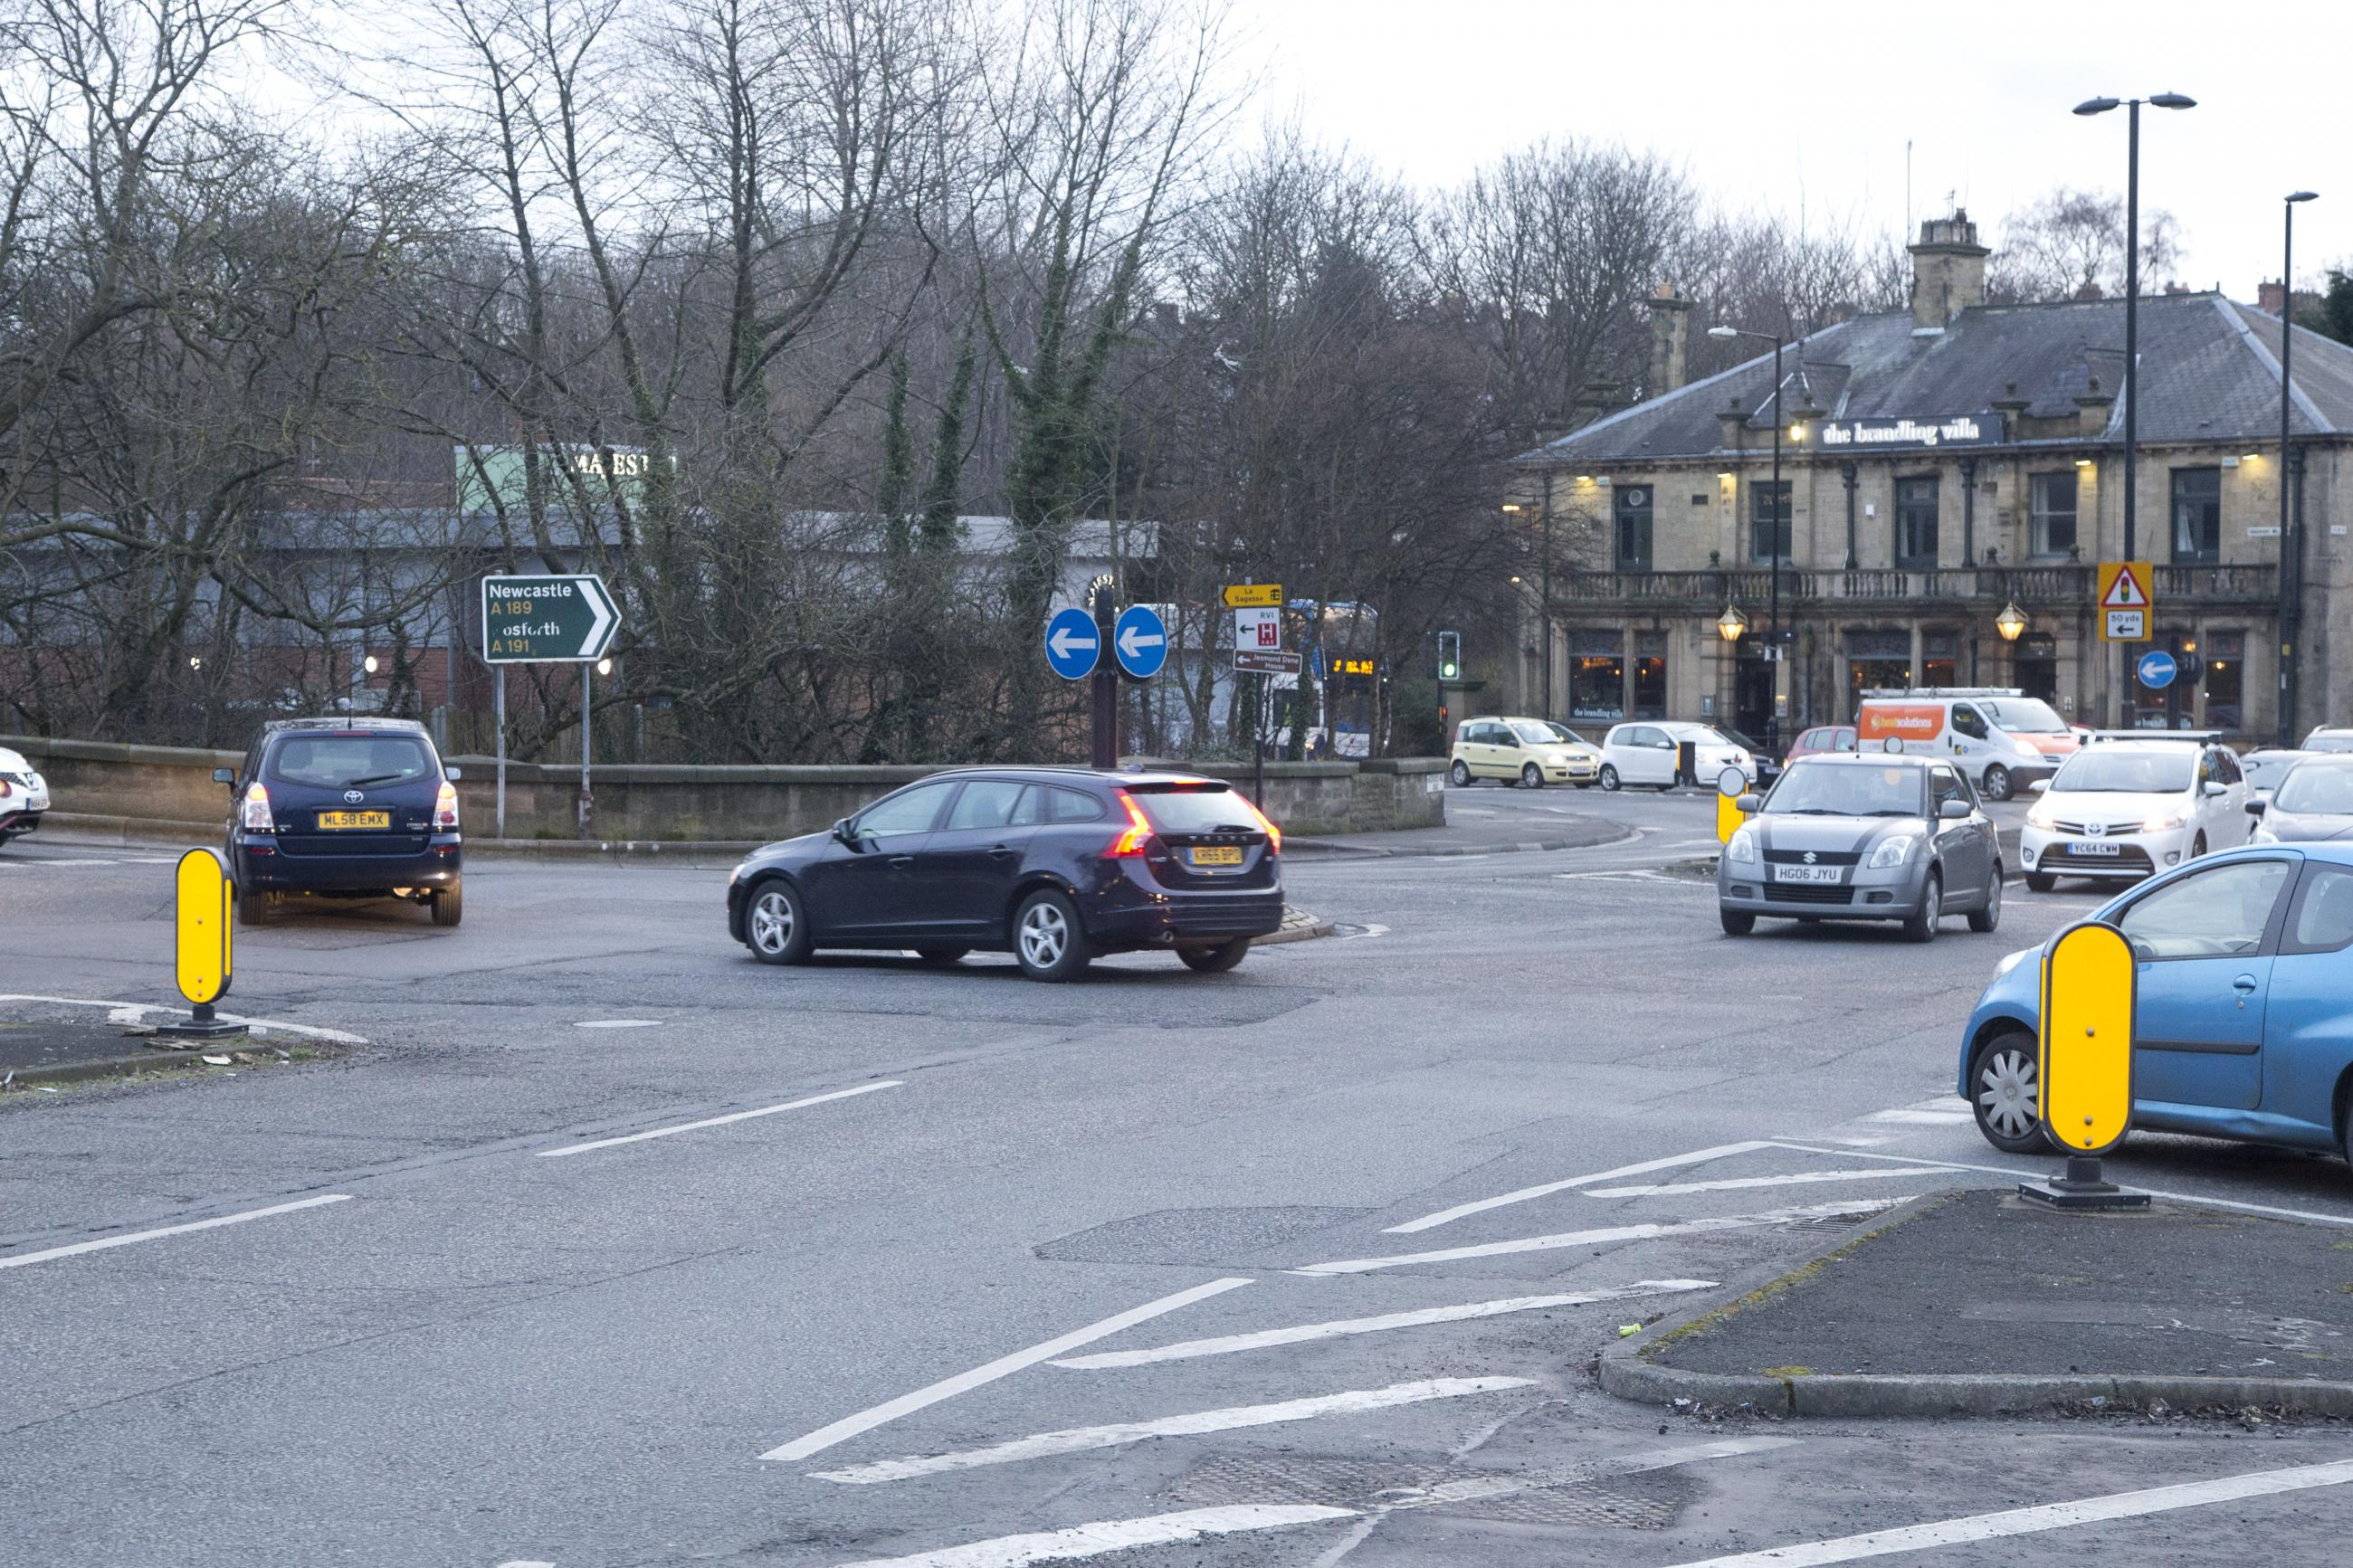 Image of Haddricks Mill junction